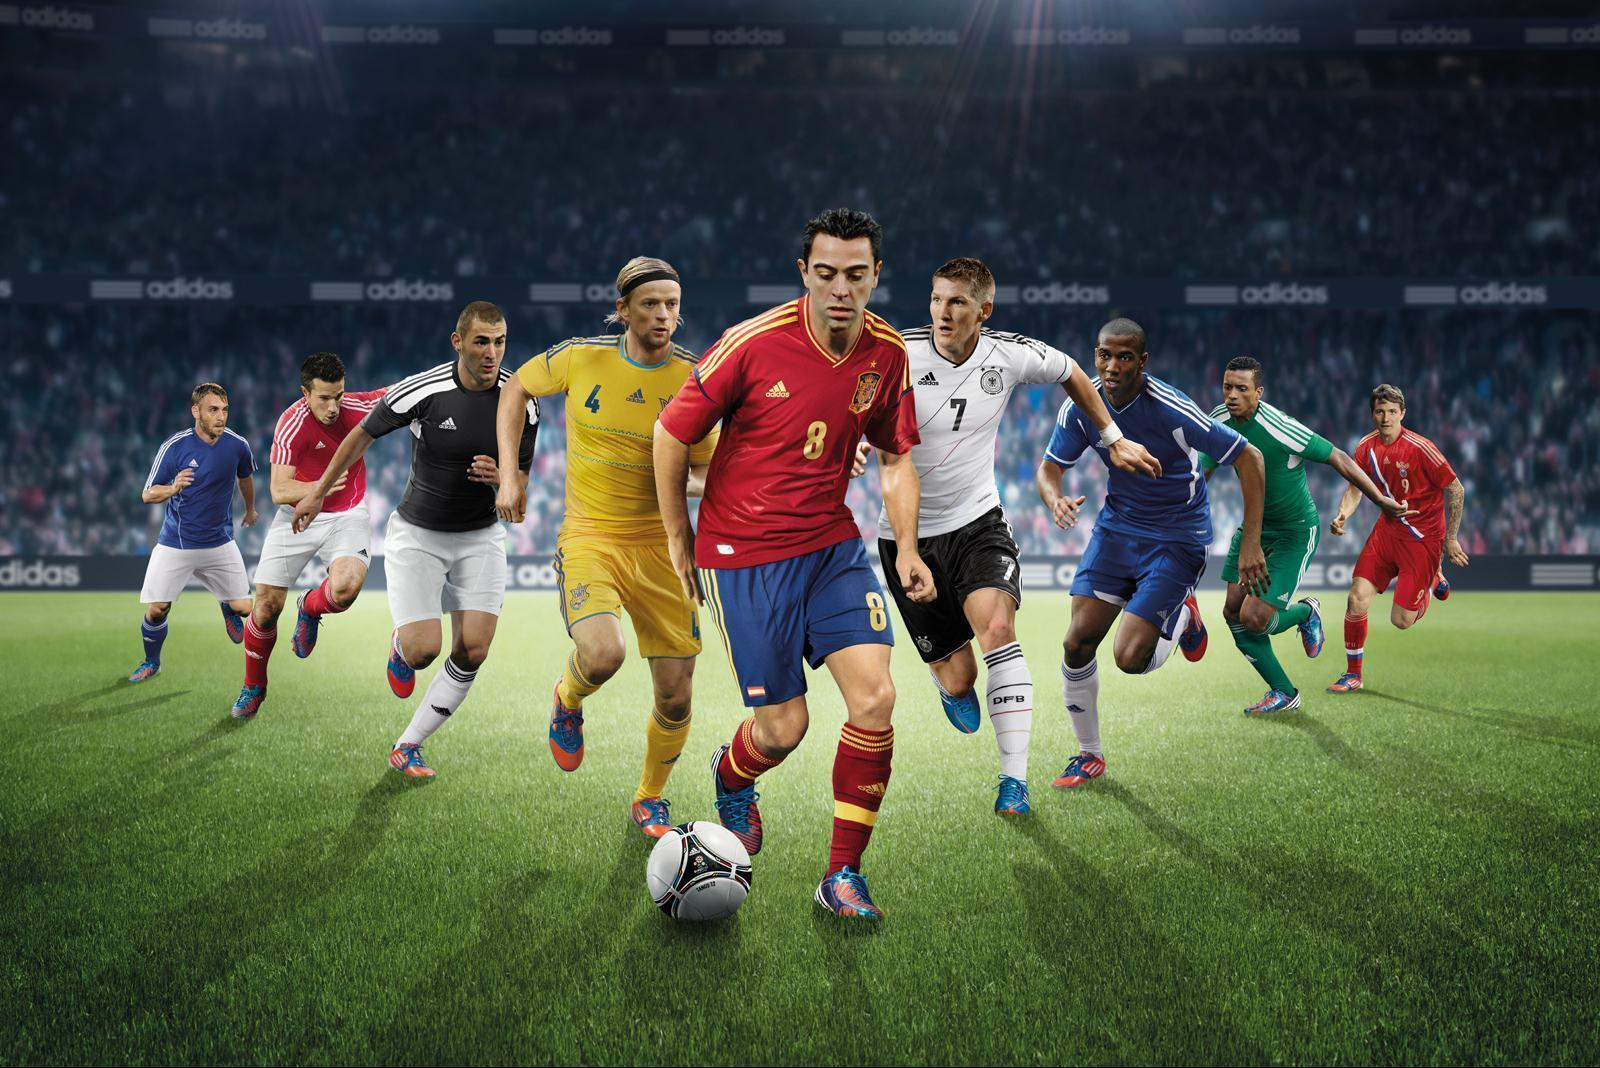 Adidas Soccer Wallpapers   Wallpaper Cave Wallpapers For   Adidas Soccer Wallpaper Messi